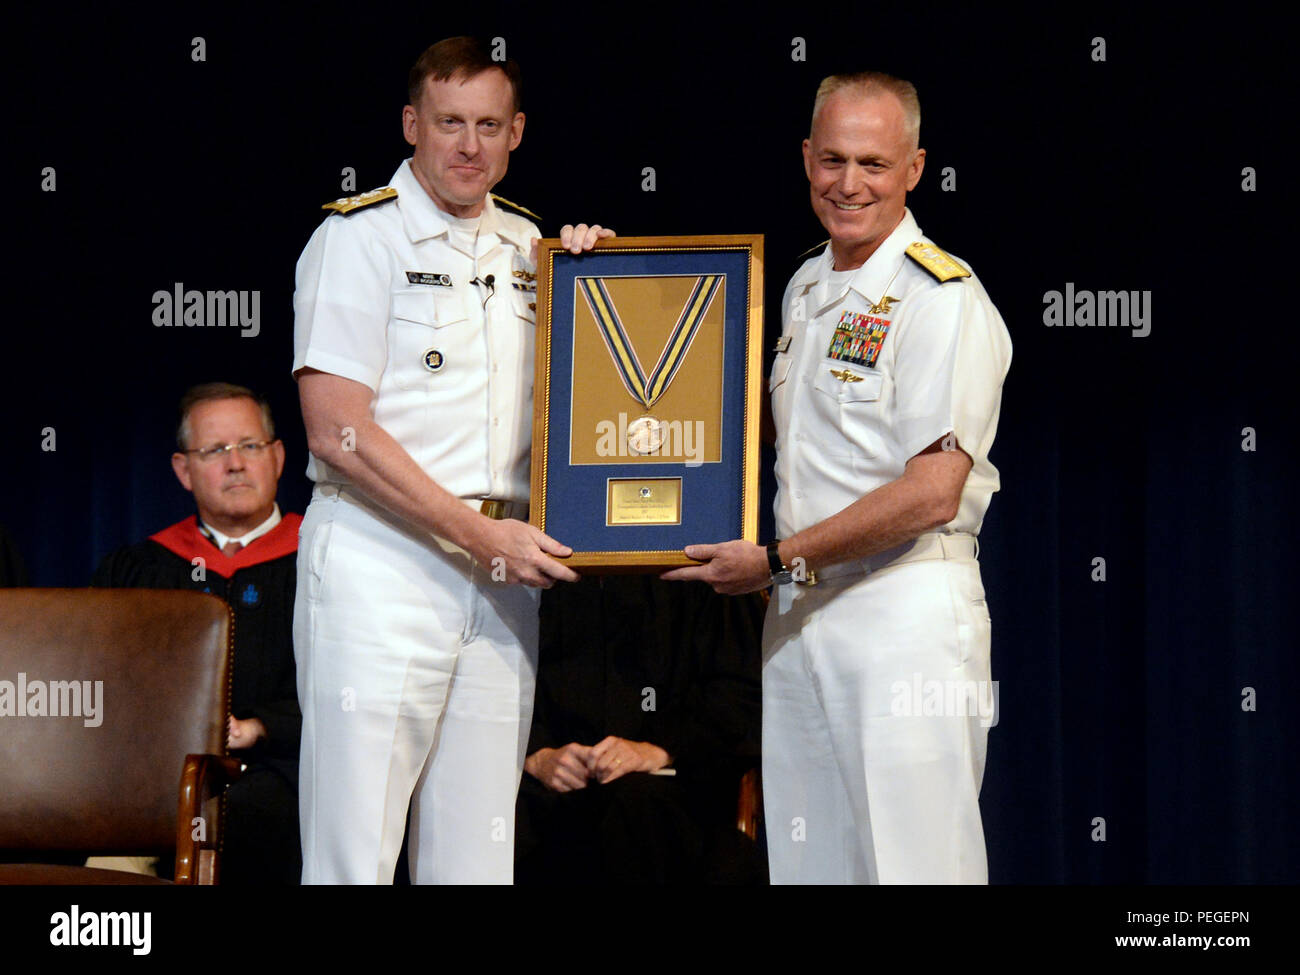 Rear Adm. P. Gardner Howe III (right), president, U.S. Naval War College (NWC), presents Adm. Michael S. Rogers, commander, U.S. Cyber Command, director, National Security Agency, chief, Central Security Service, the 2015 Distinguished Graduate Leadership Award  (DGLA) during a convocation ceremony at NWC in Newport, Rhode Island. During the ceremony, Rogers provided a keynote address and was presented the 2015 DLGA.  The award honors NWC graduates who have earned positions of prominence in the national defense field.  (U.S. Navy photo by Chief Mass Communication Specialist James E. Foehl/Rele - Stock Image